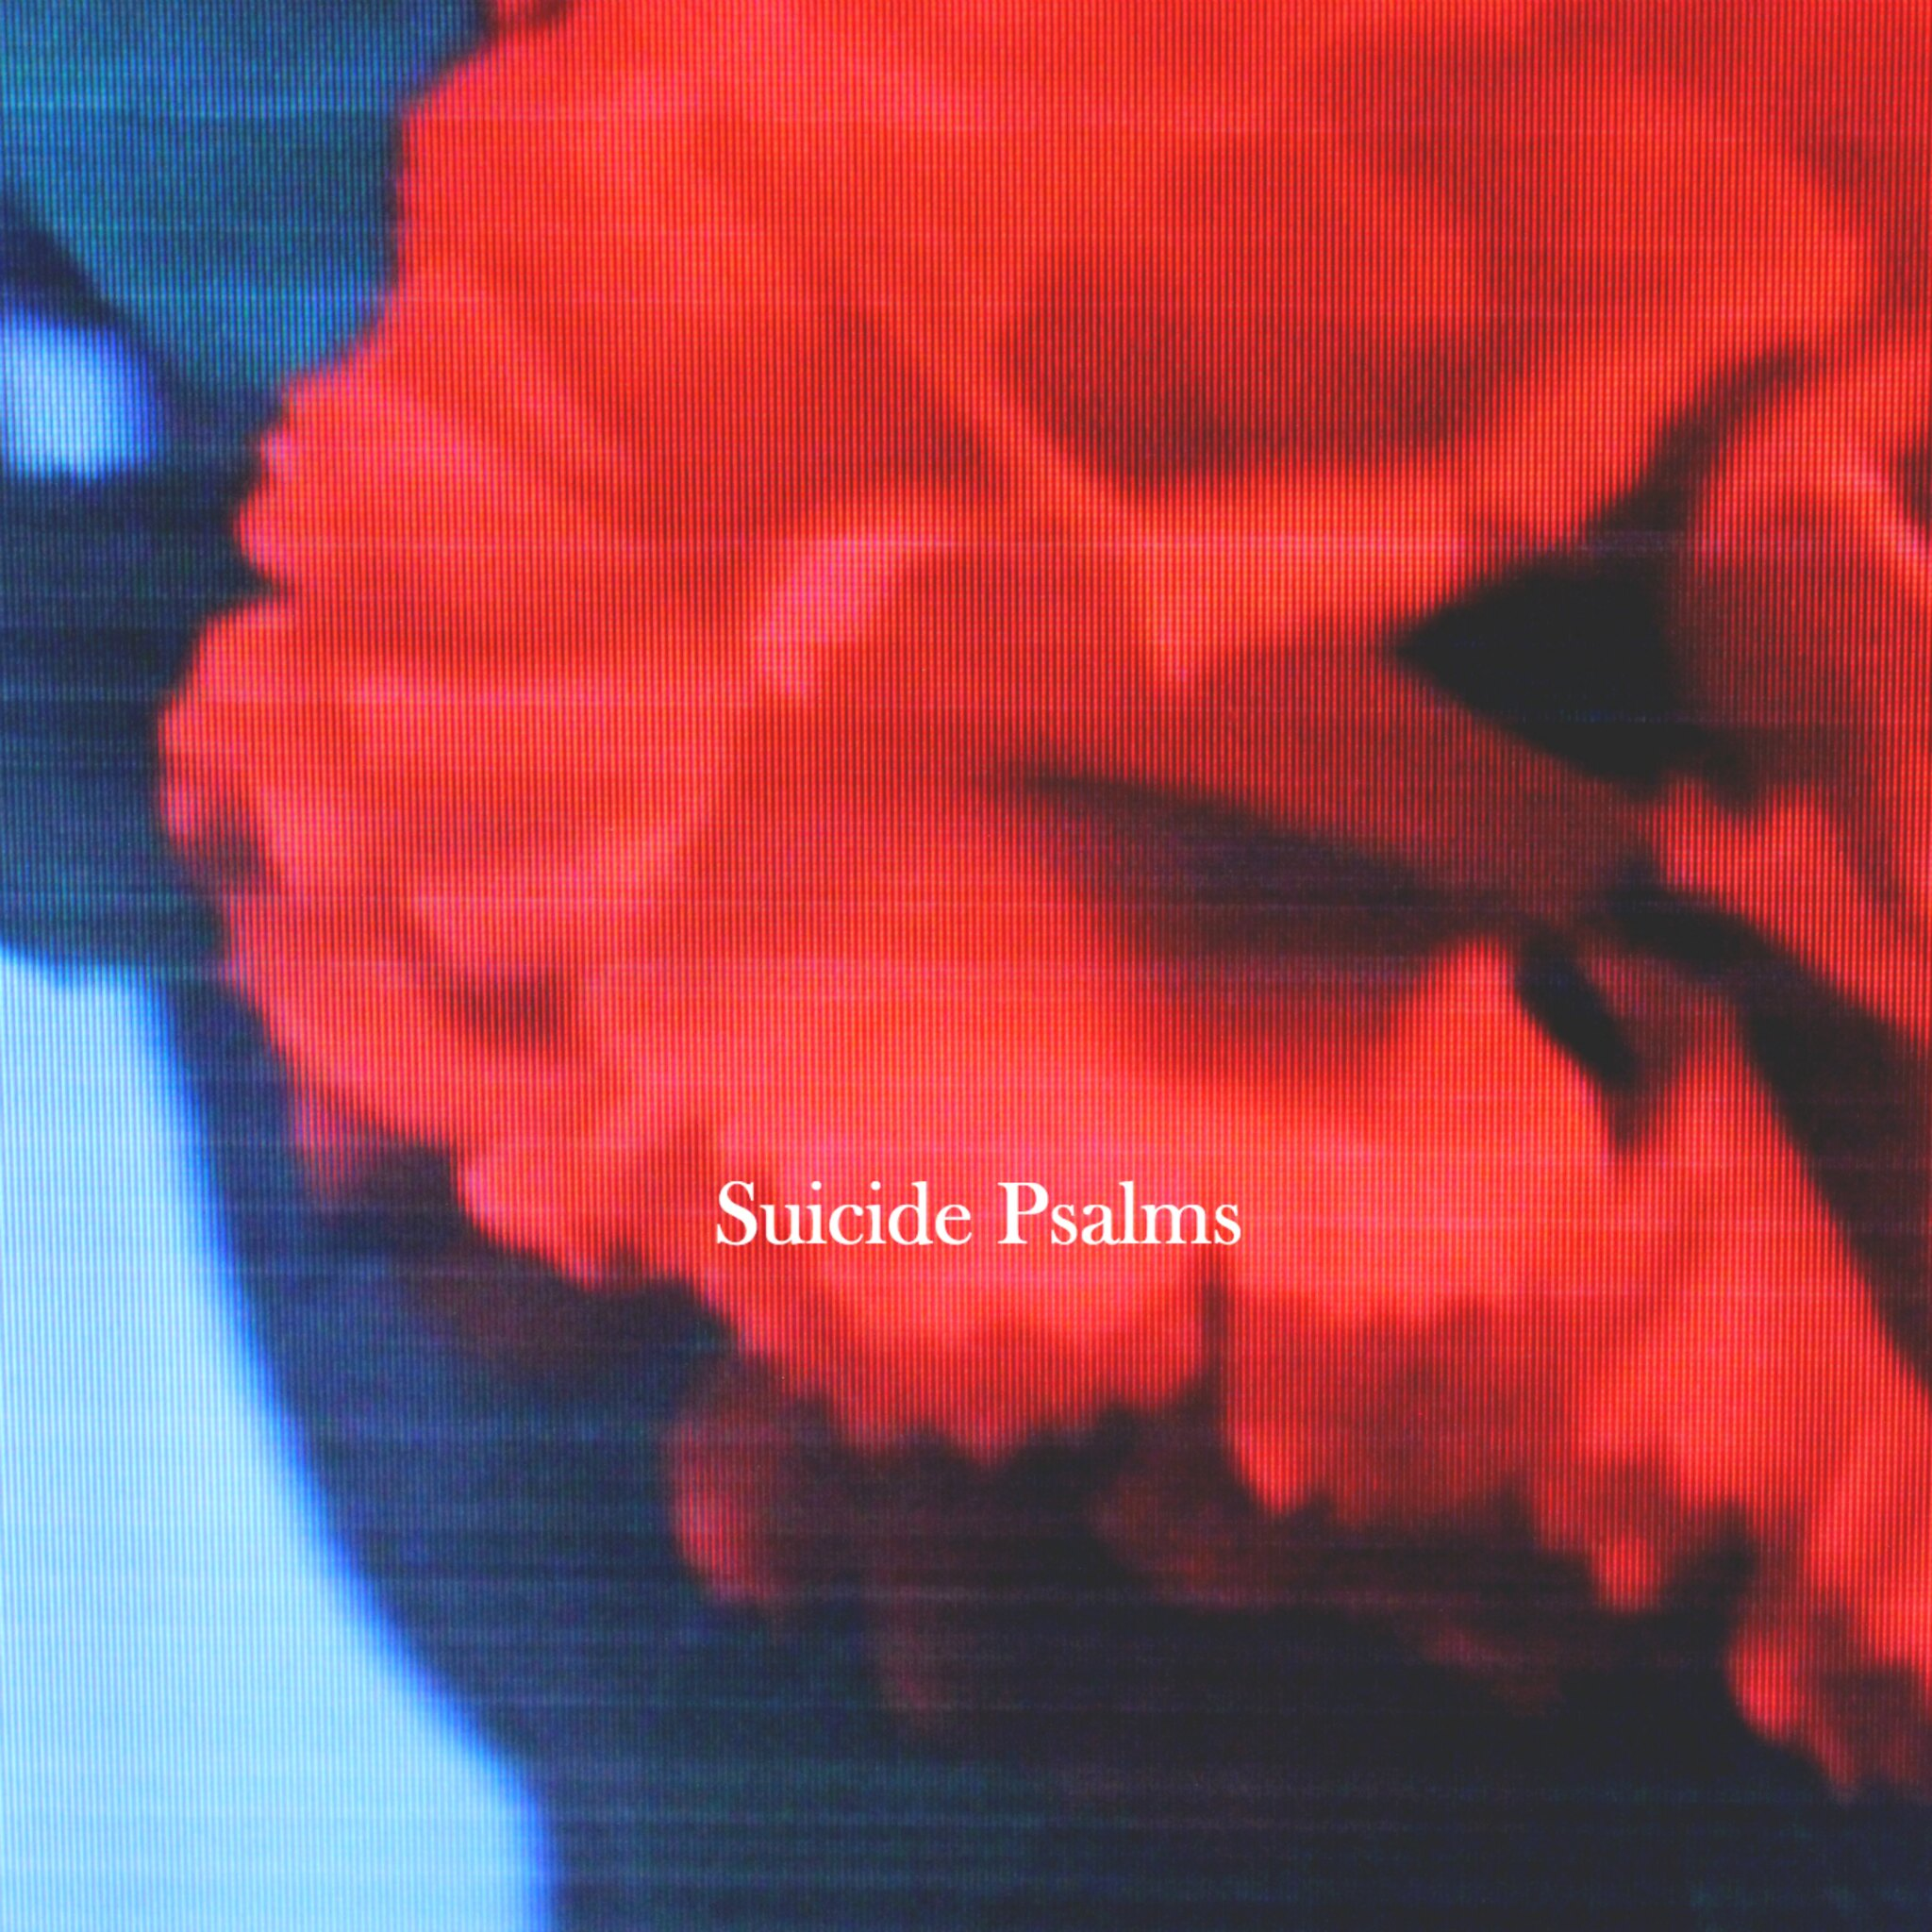 Suicide Psalms